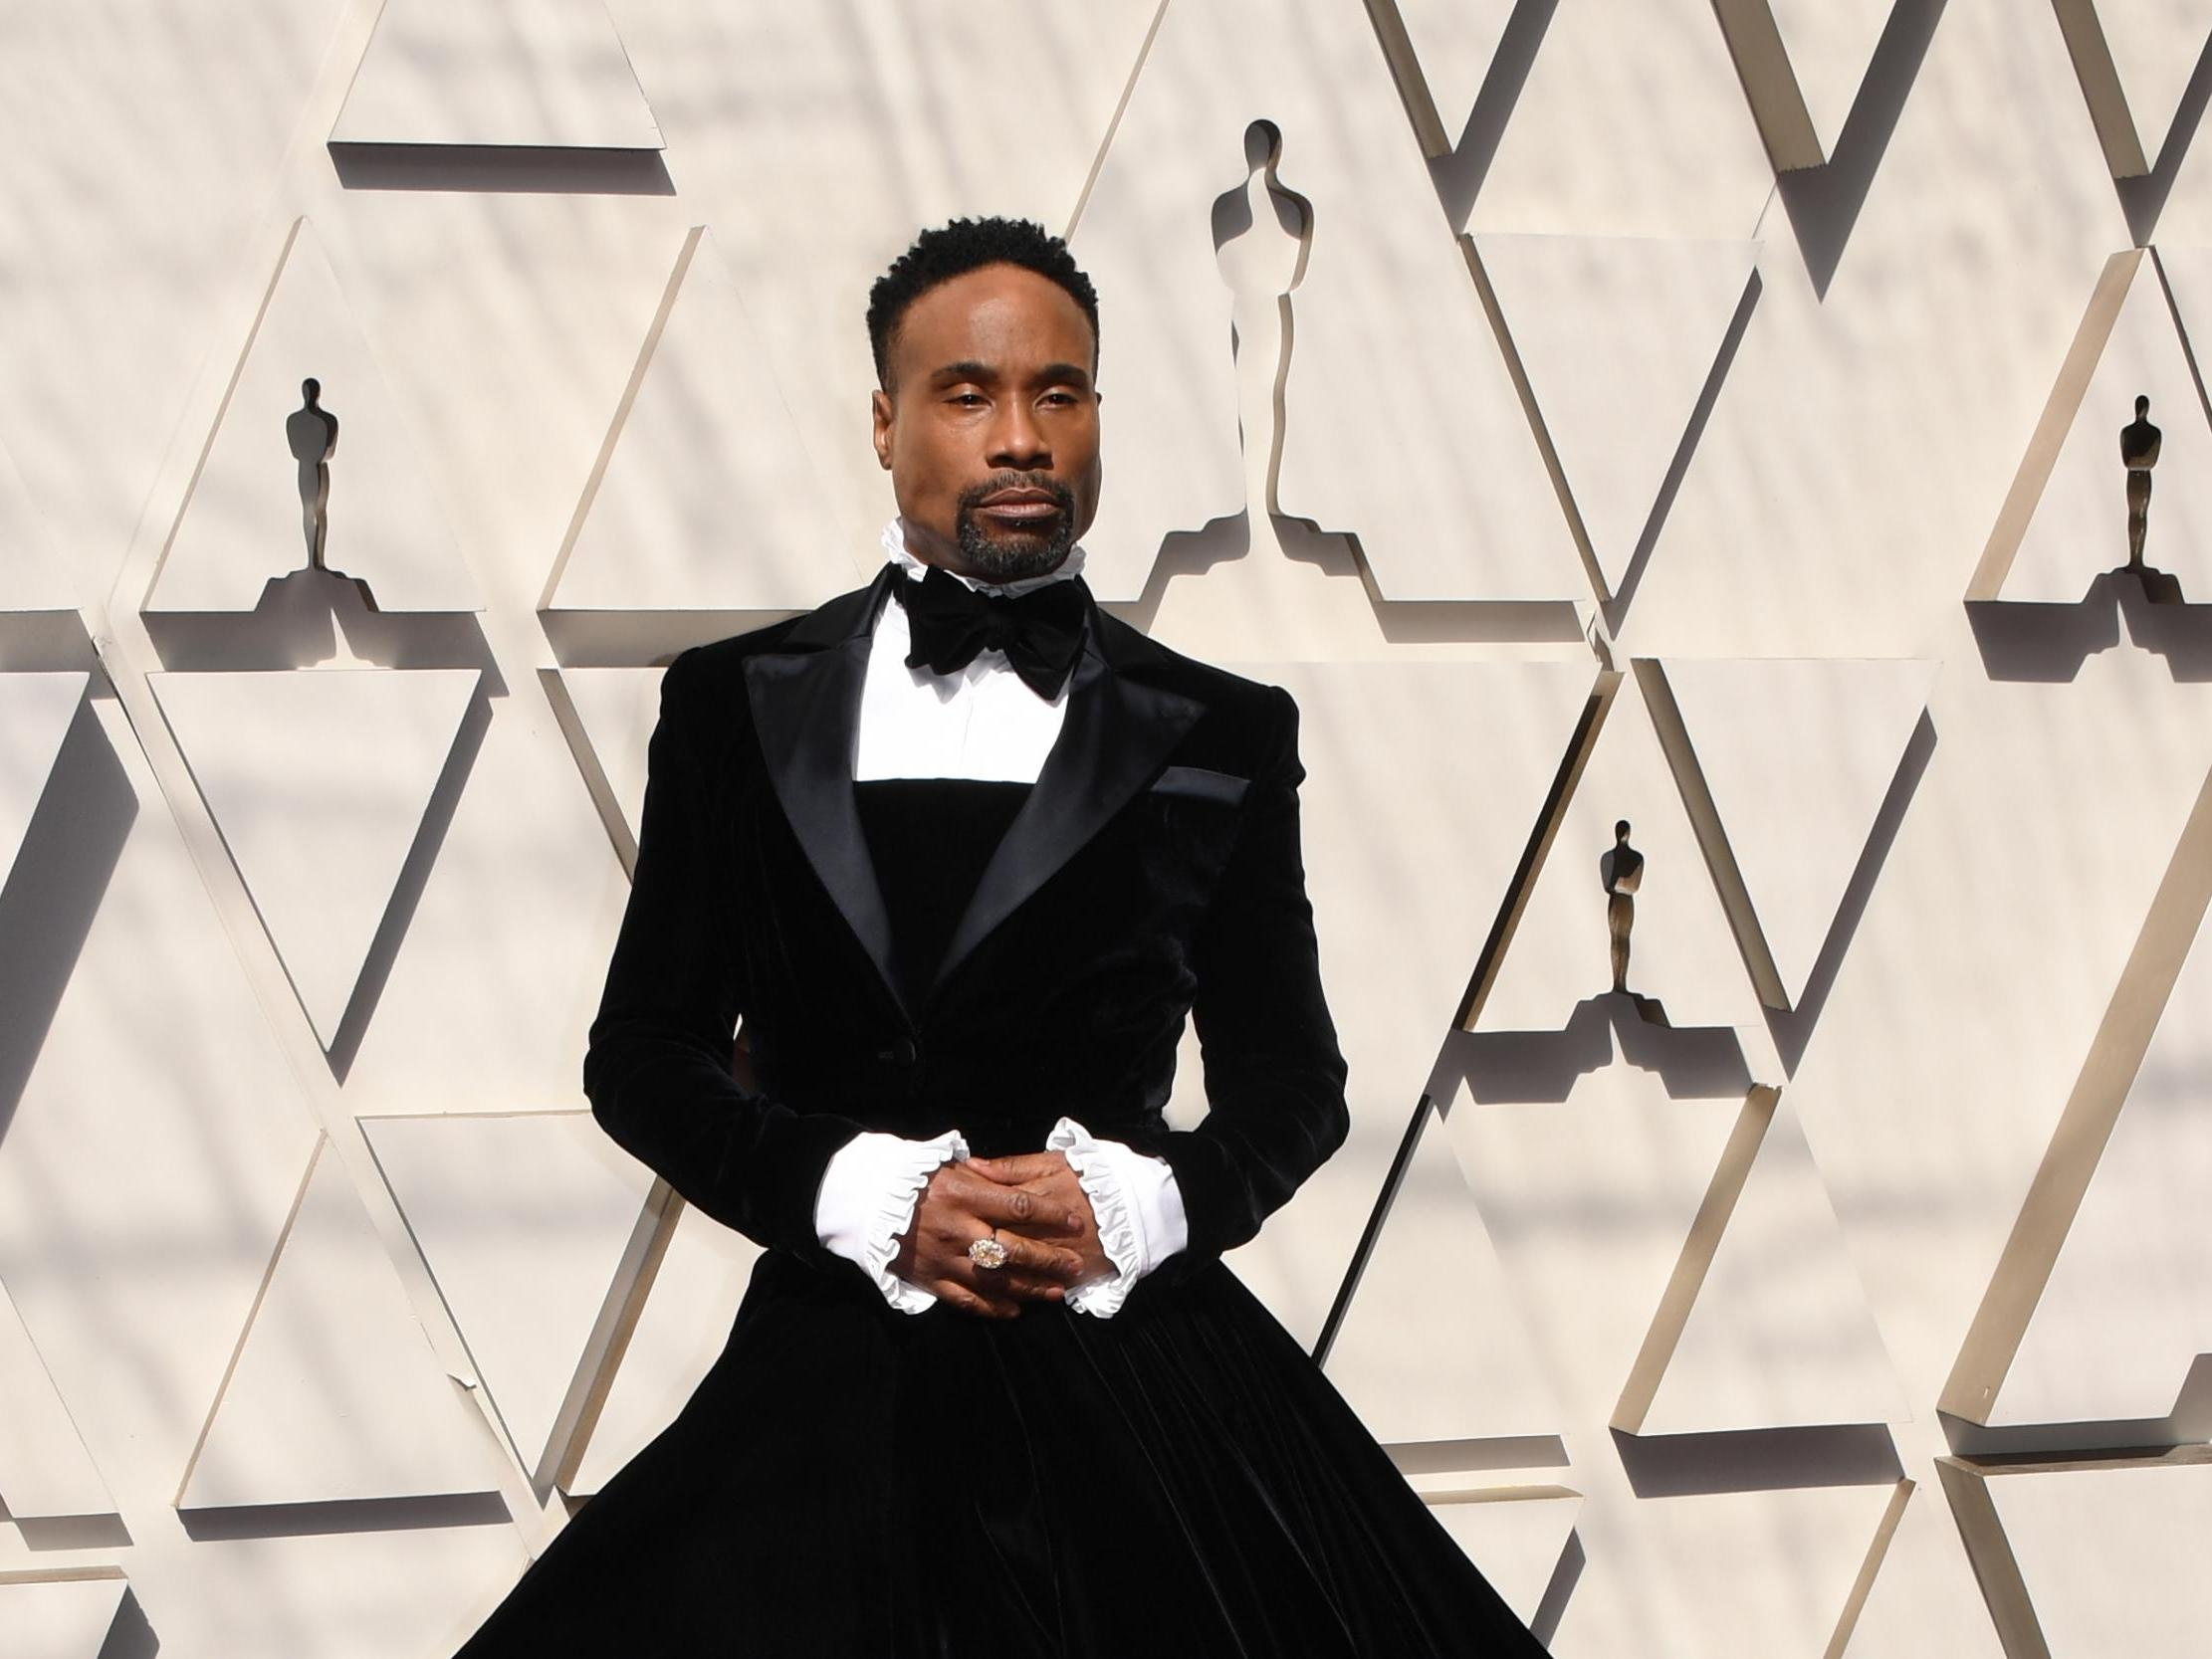 Billy Porter on the Oscars outfit that broke the internet: 'I should have worn this f***ing dress 20 years ago'